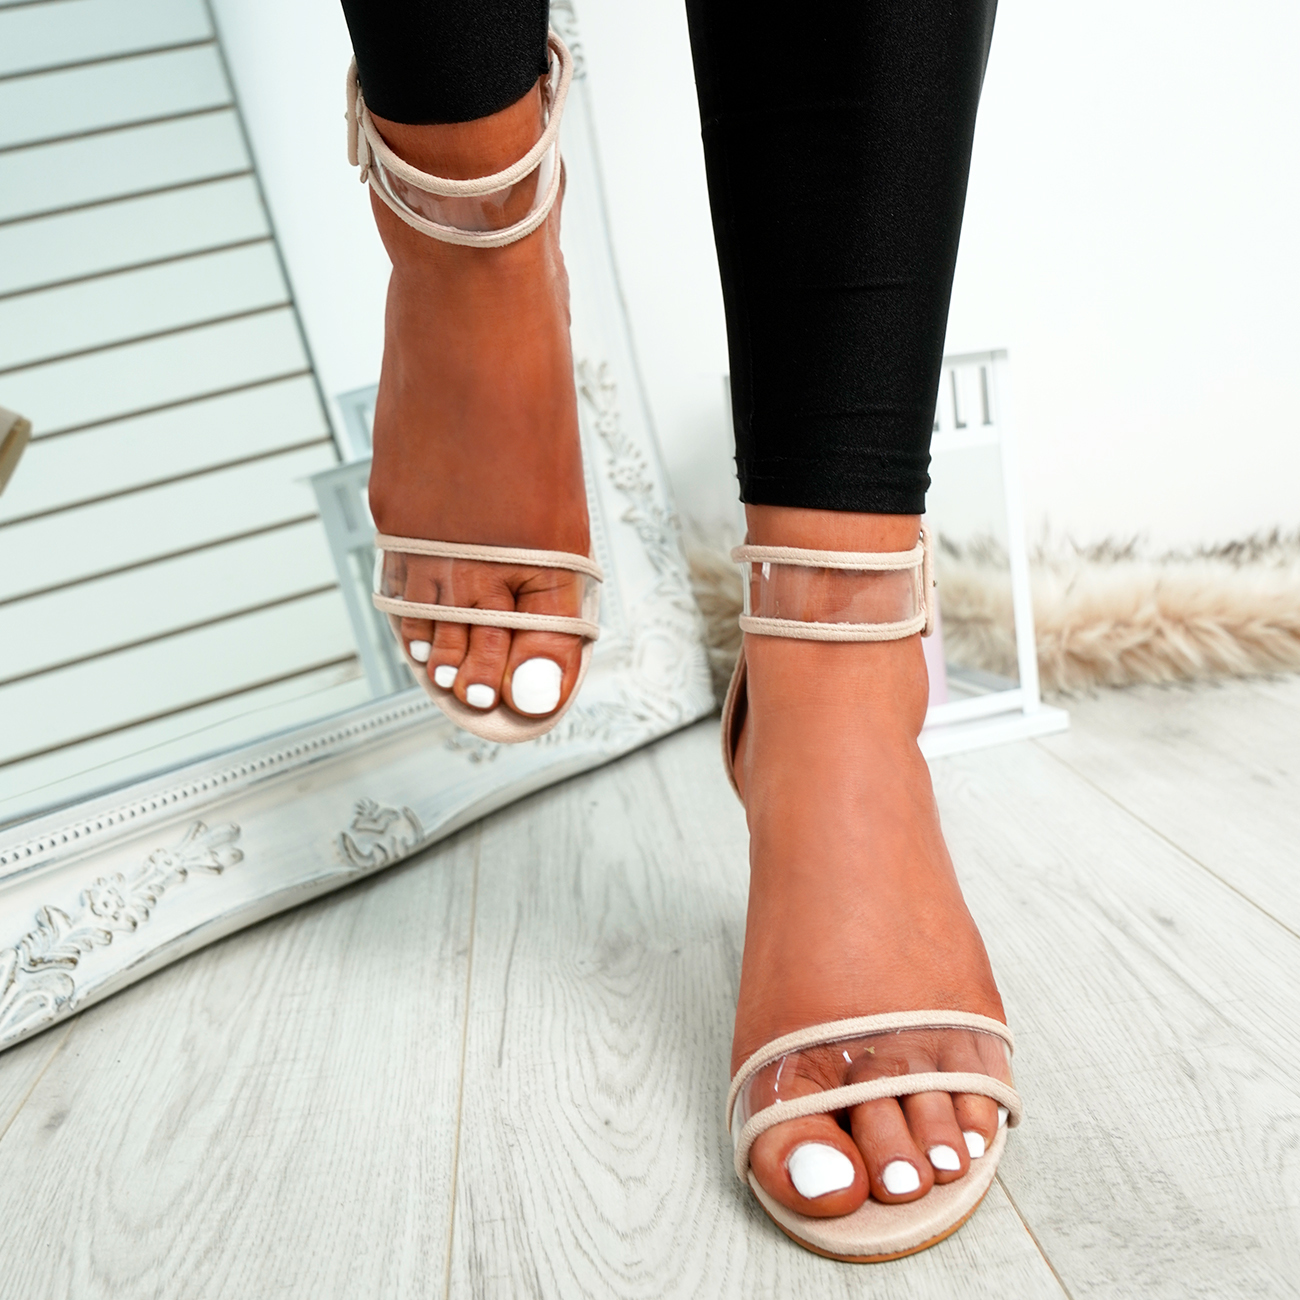 WOMENS-LADIES-ANKLE-STRAP-PEEP-TOE-HIGH-BLOCK-HEEL-SANDALS-FASHION-SHOES thumbnail 10